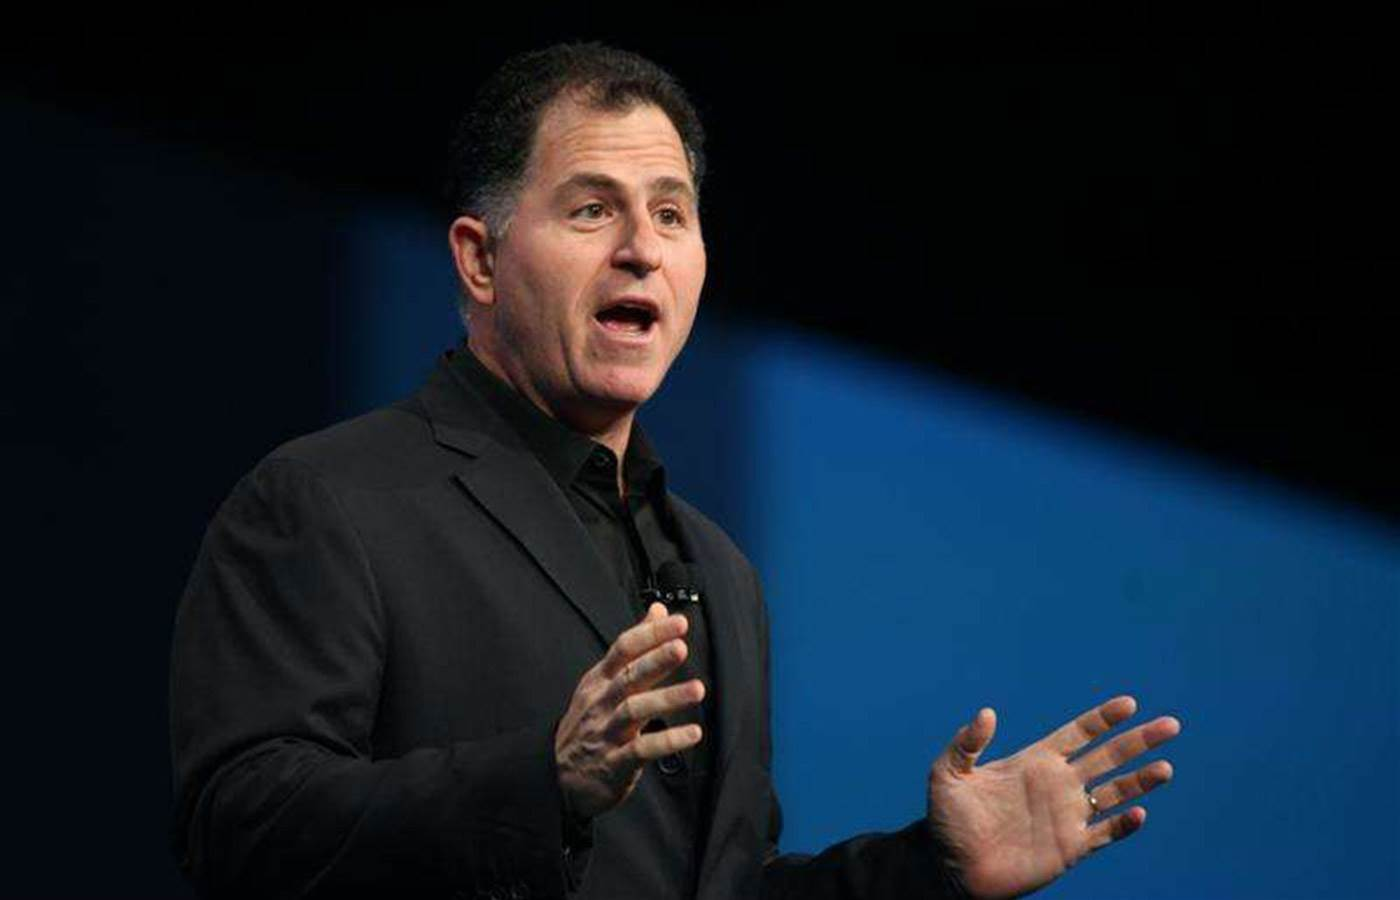 Dell tipped to go public again